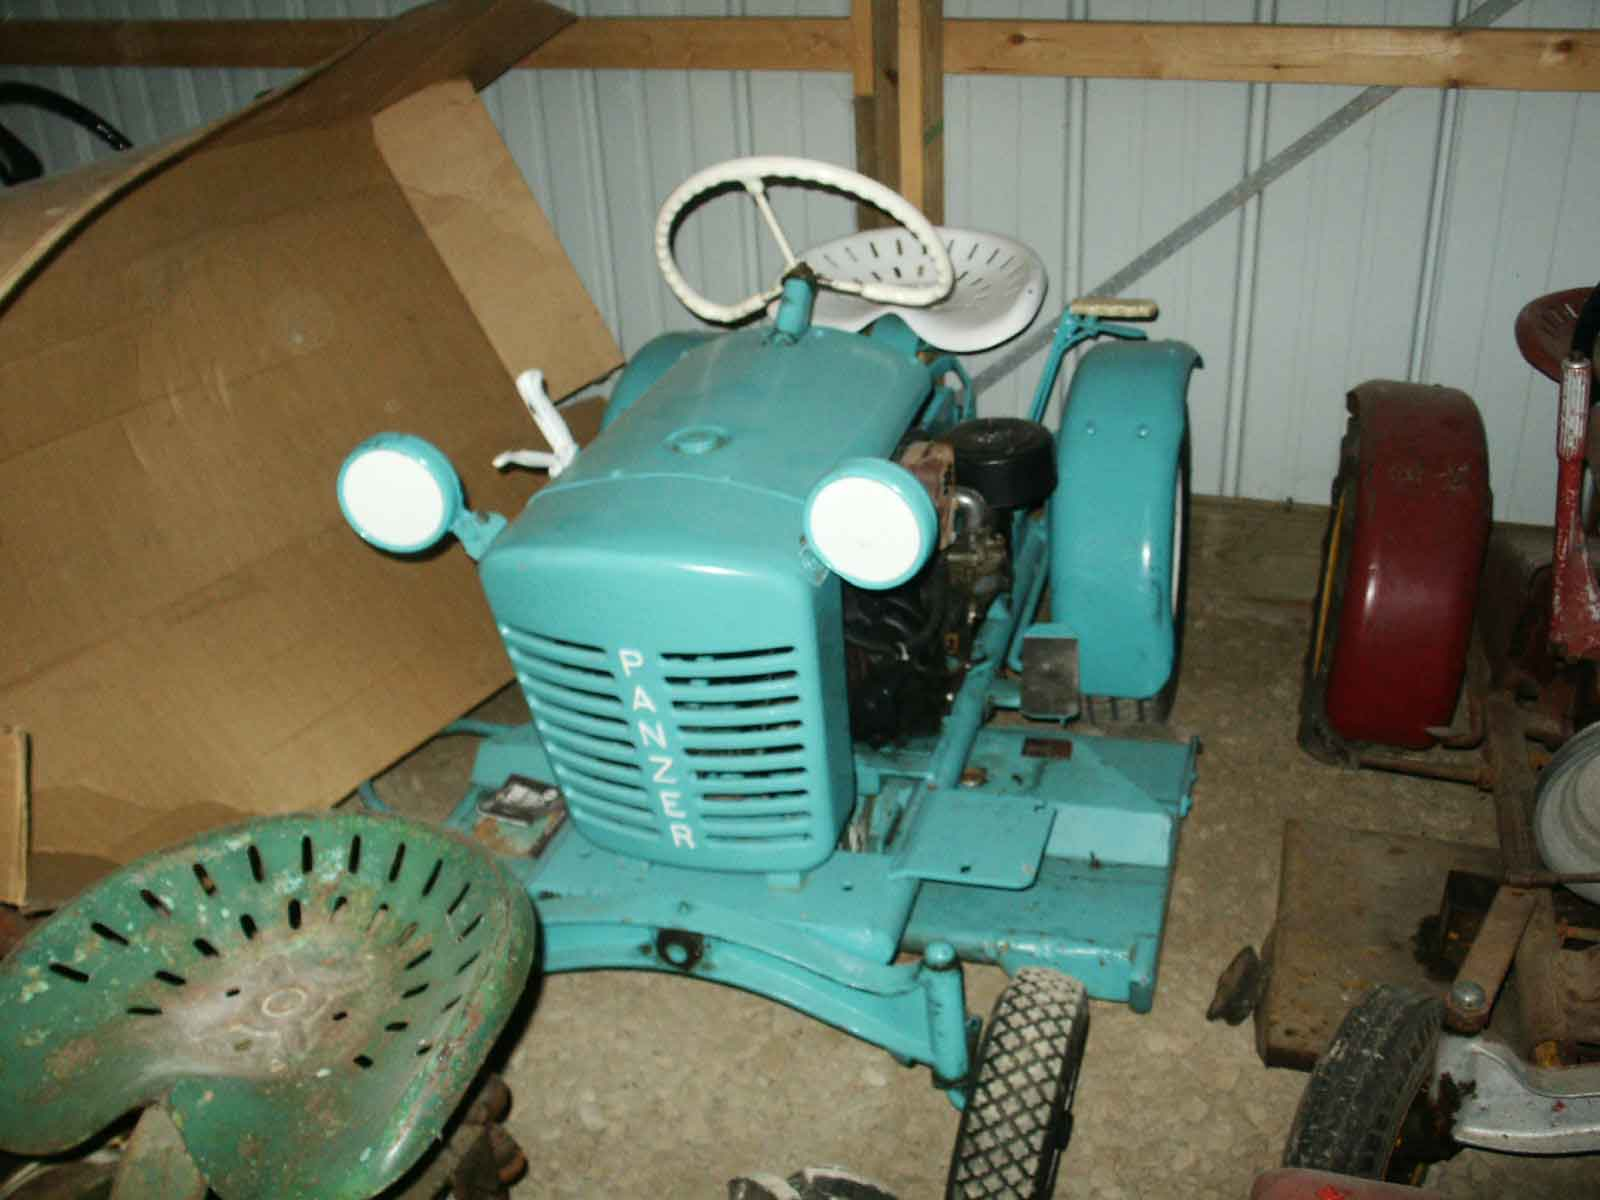 Bill Janitor's Race Tractor